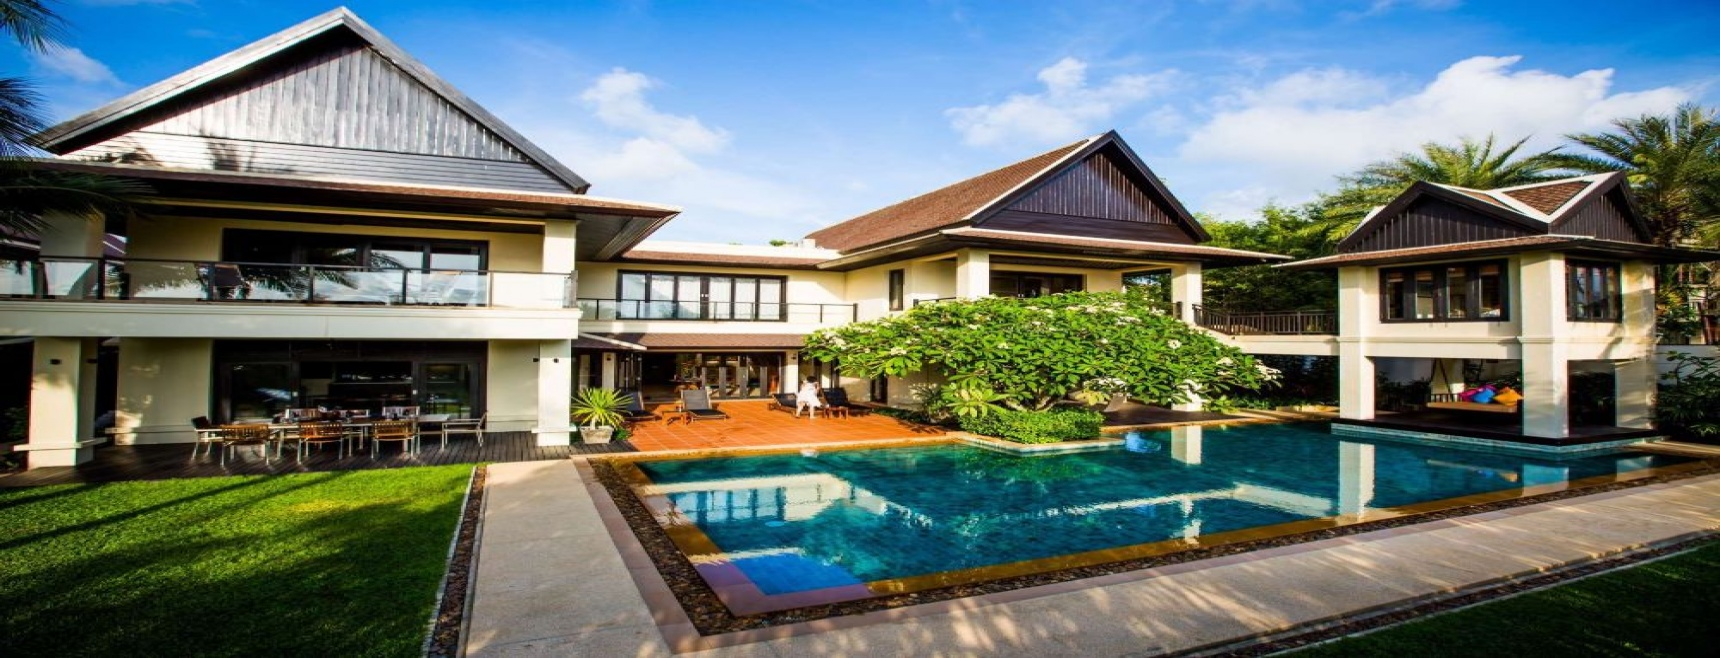 Maan Tawan 6 Bedroom(Thai-Real.com)